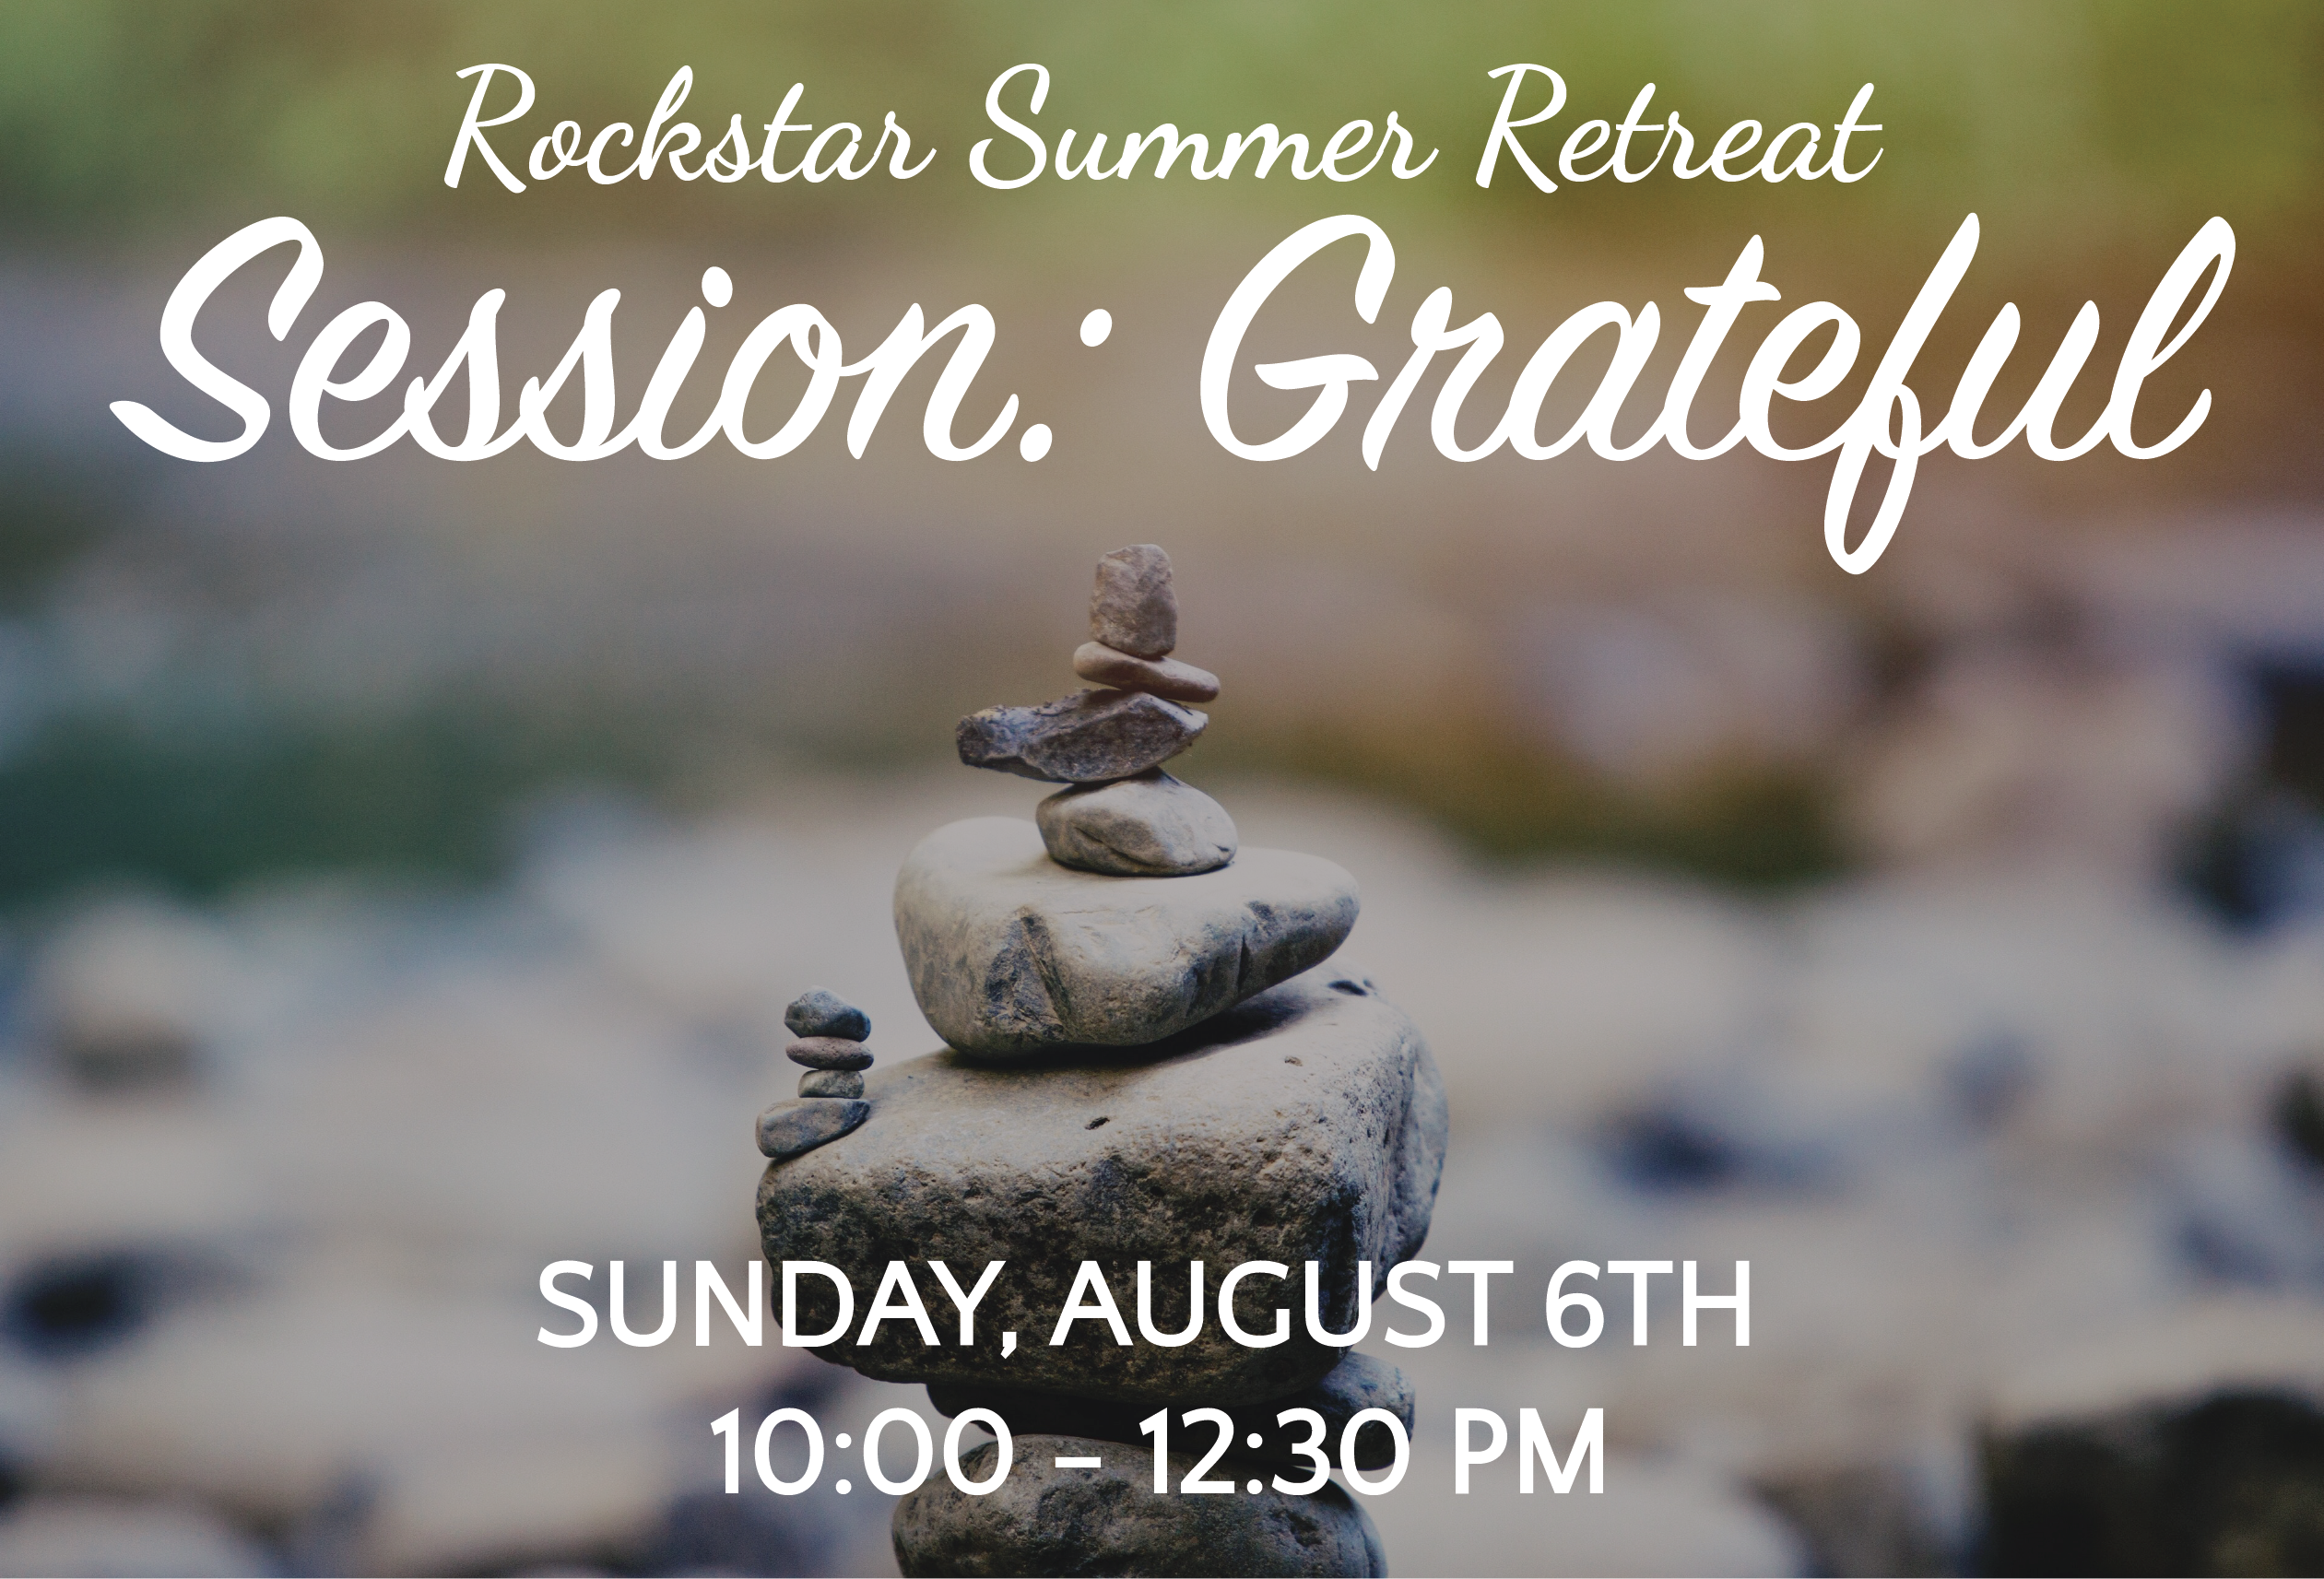 Rockstar Summer 2017 Session Grateful